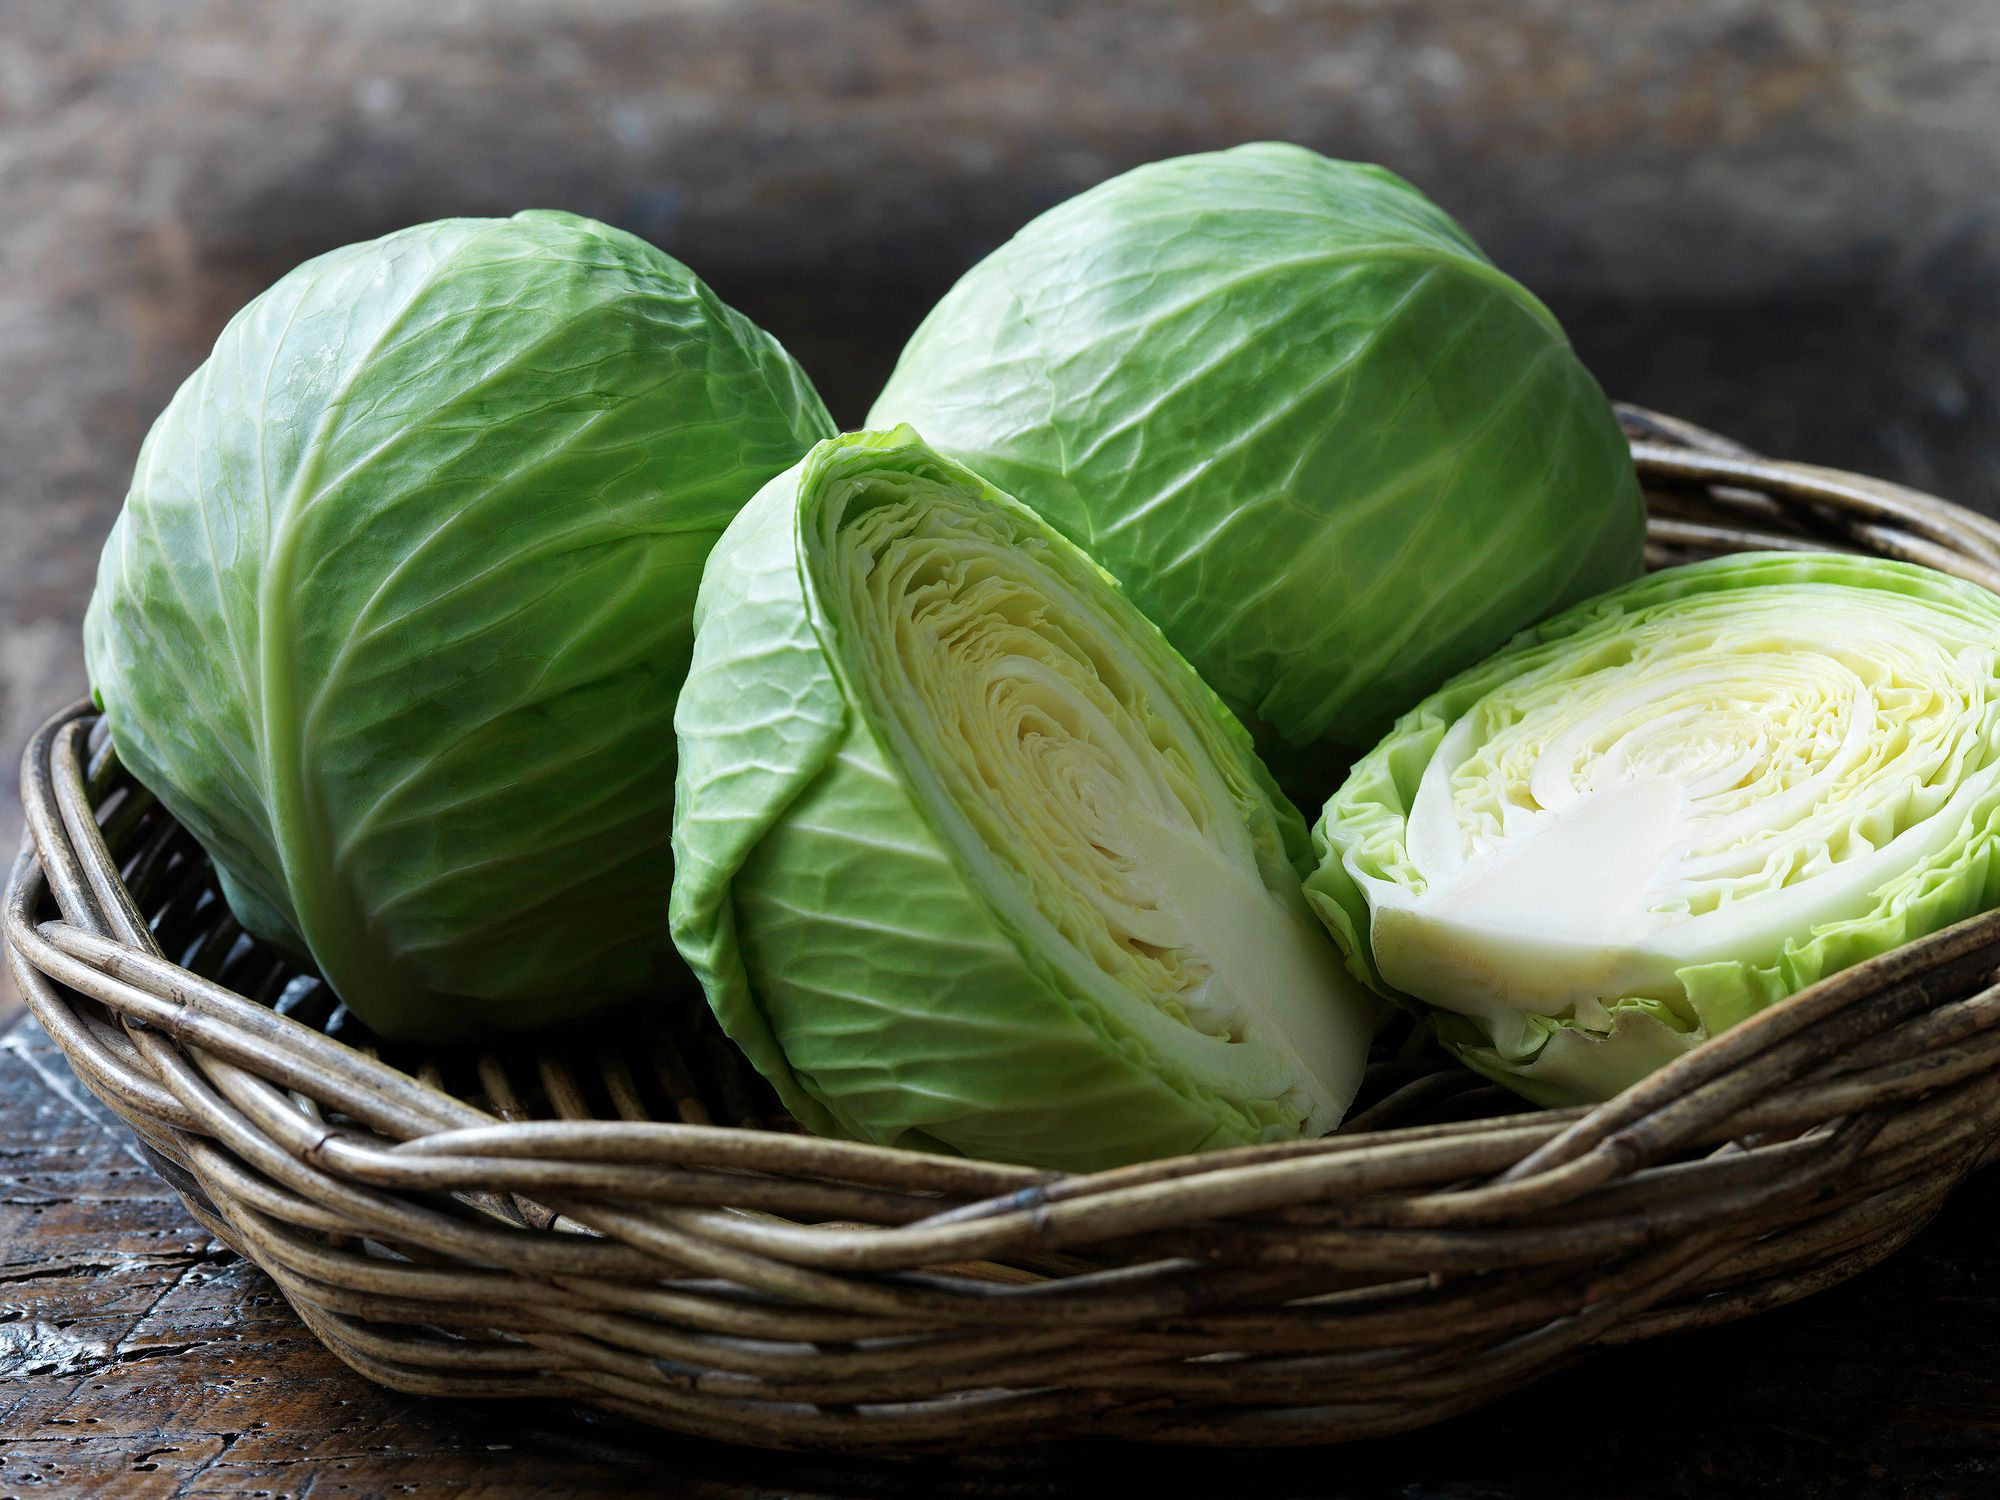 Cabbage-GettyImages-683732681-586599443df78ce2c32dd4c3